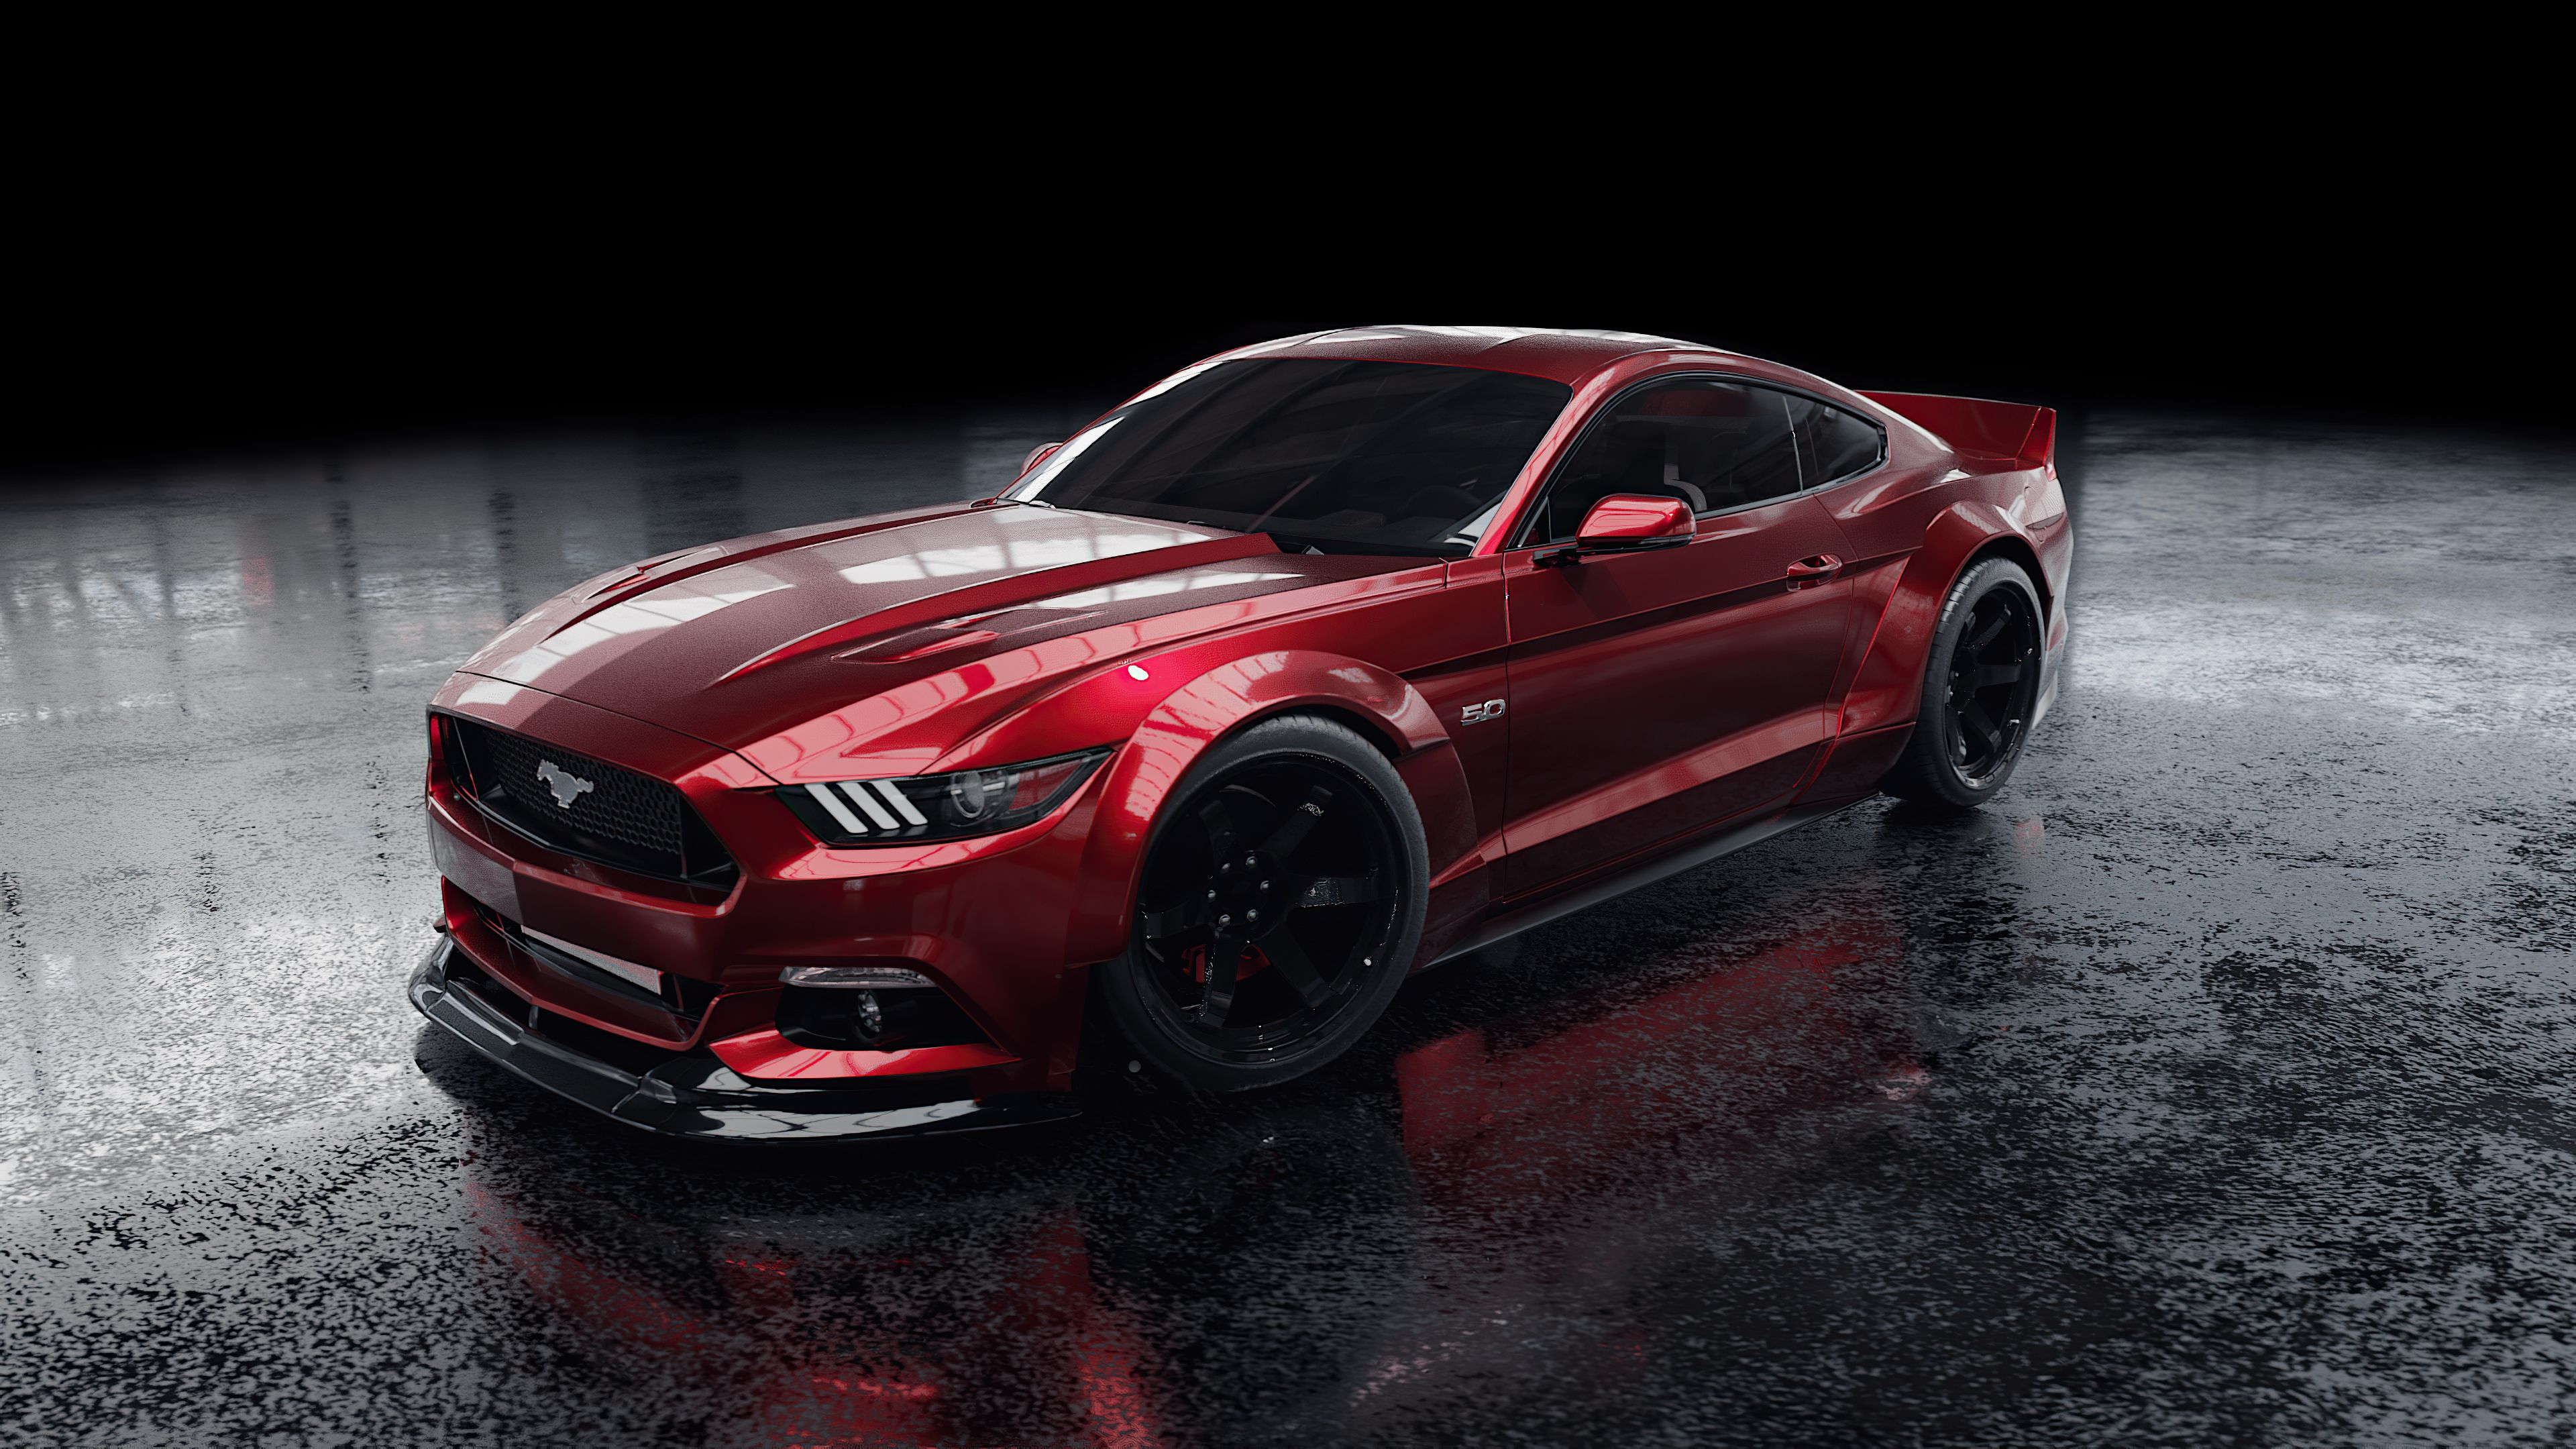 Free Download Red Ford Mustang 4k Red Ford Mustang 4k Wallpapers Ford Mustang 3840x2160 For Your Desktop Mobile Tablet Explore 34 Mustang Backgrounds Mustang Wallpaper Mustang Wallpapers Mustang Burnout Wallpaper